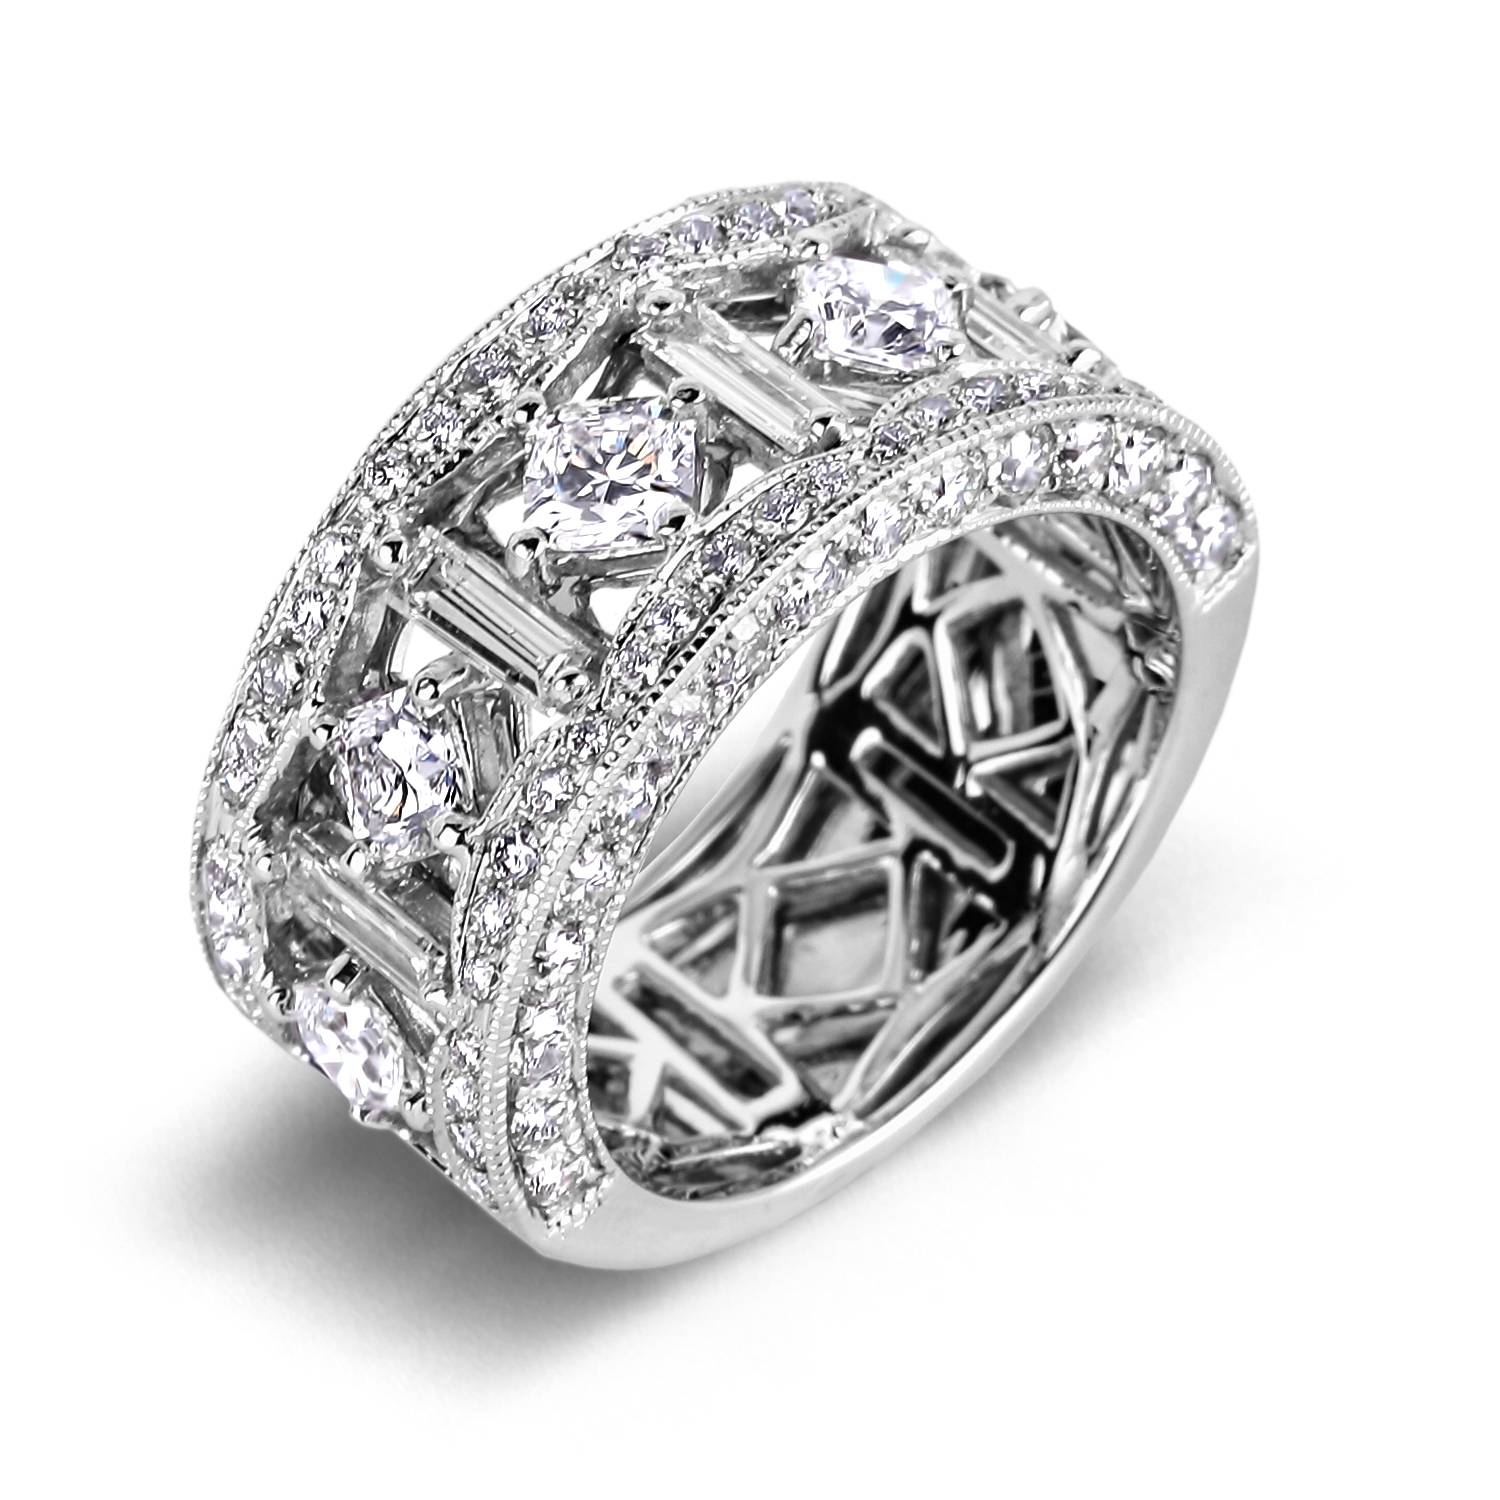 Ring : Jared Anniversaryings Diamond White Gold Irish For Pertaining To Current Irish Anniversary Rings (View 16 of 25)